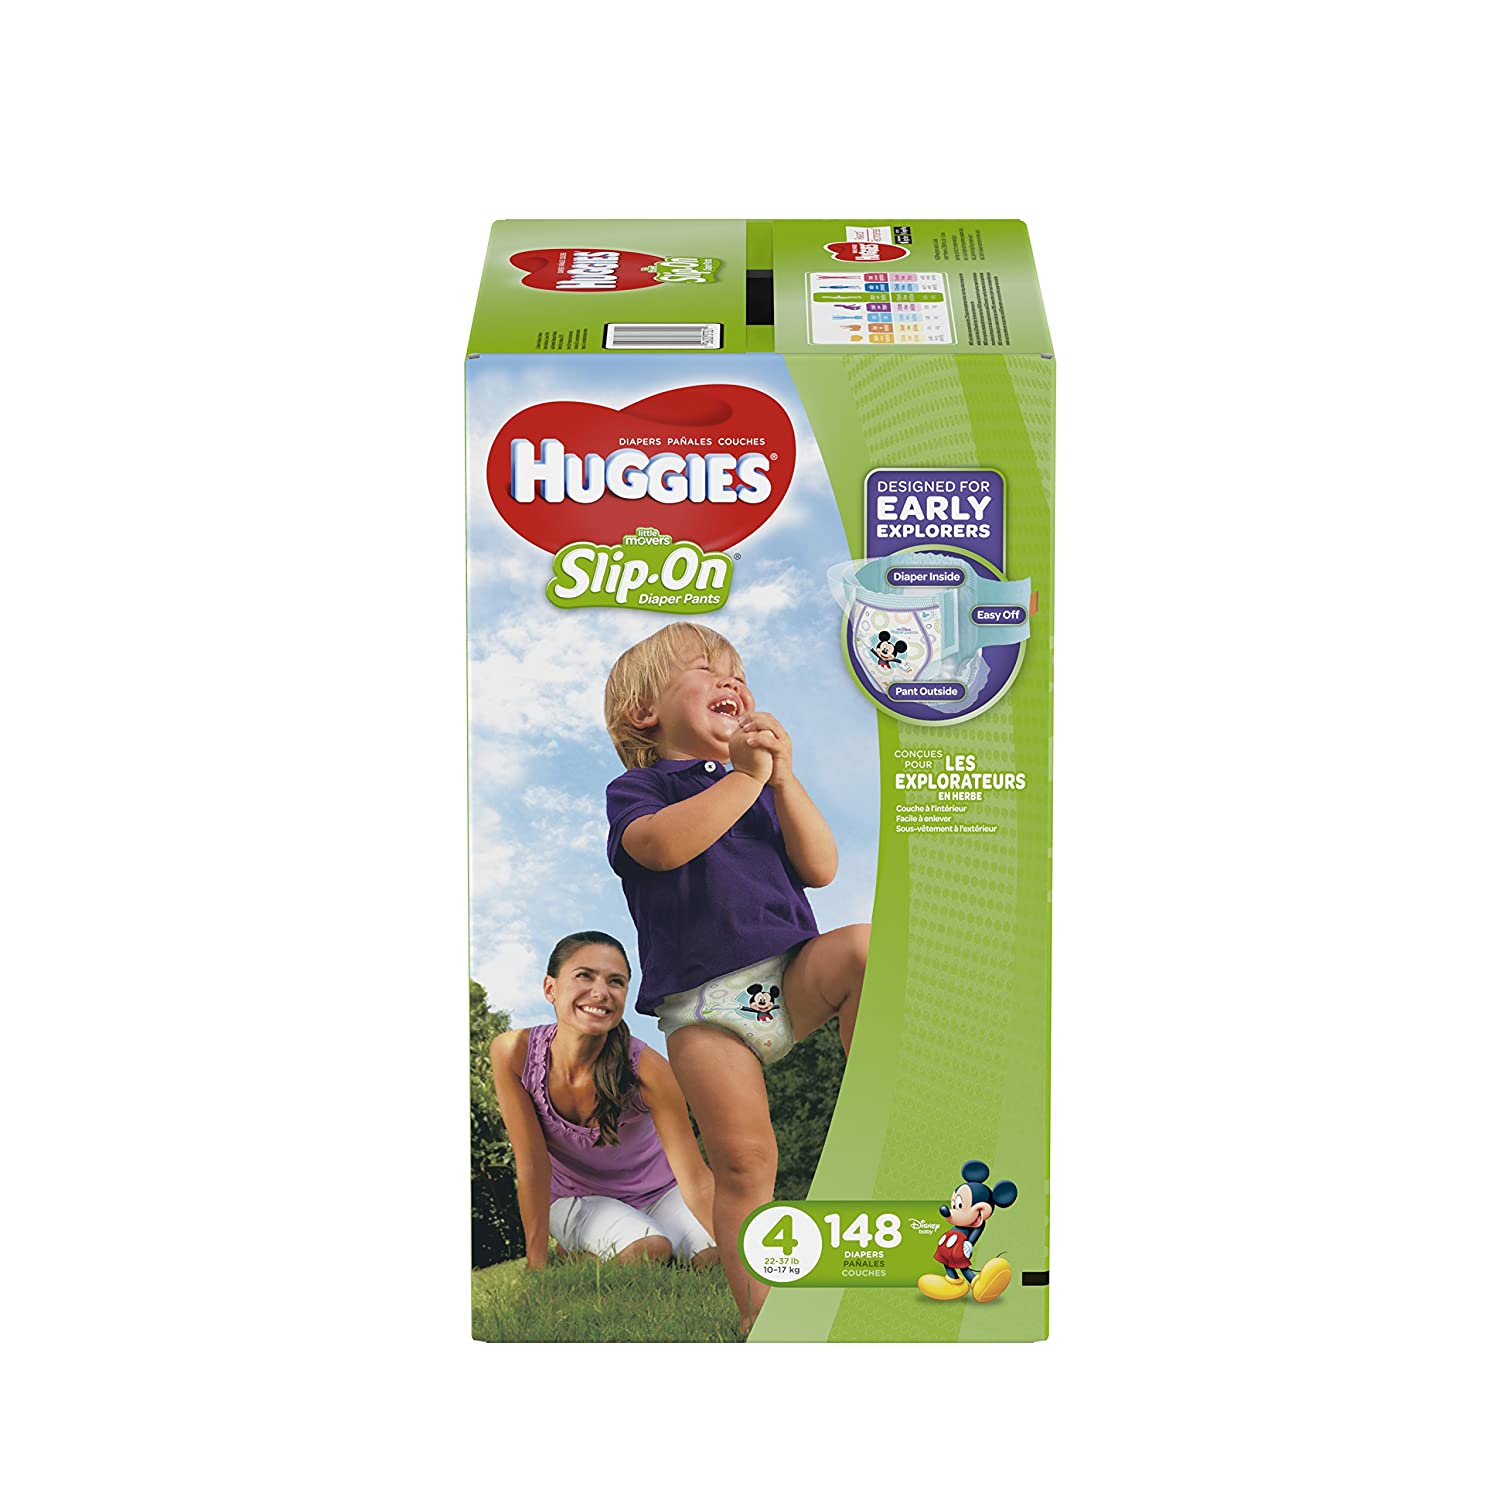 HUGGIES Little Movers Slip On Diaper Pants, Size 5, 128 Count, ECONOMY PLUS (Packaging May Vary) 10036000373025